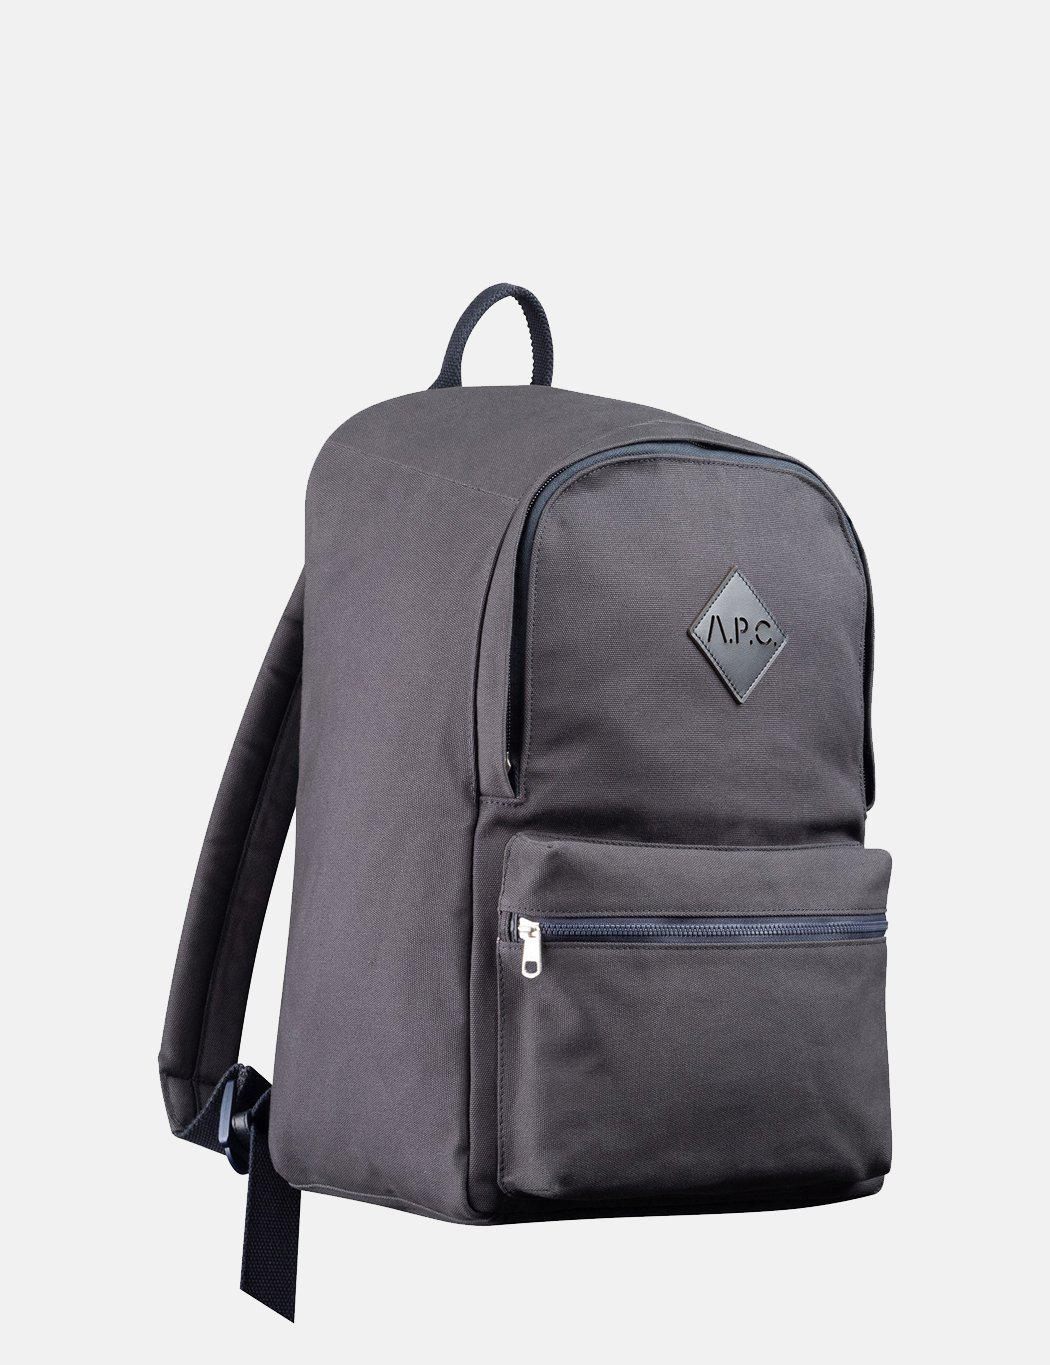 A.P.C. Sac A Dos Sadie Backpack in Blue for Men - Lyst 81bb7b9c8844